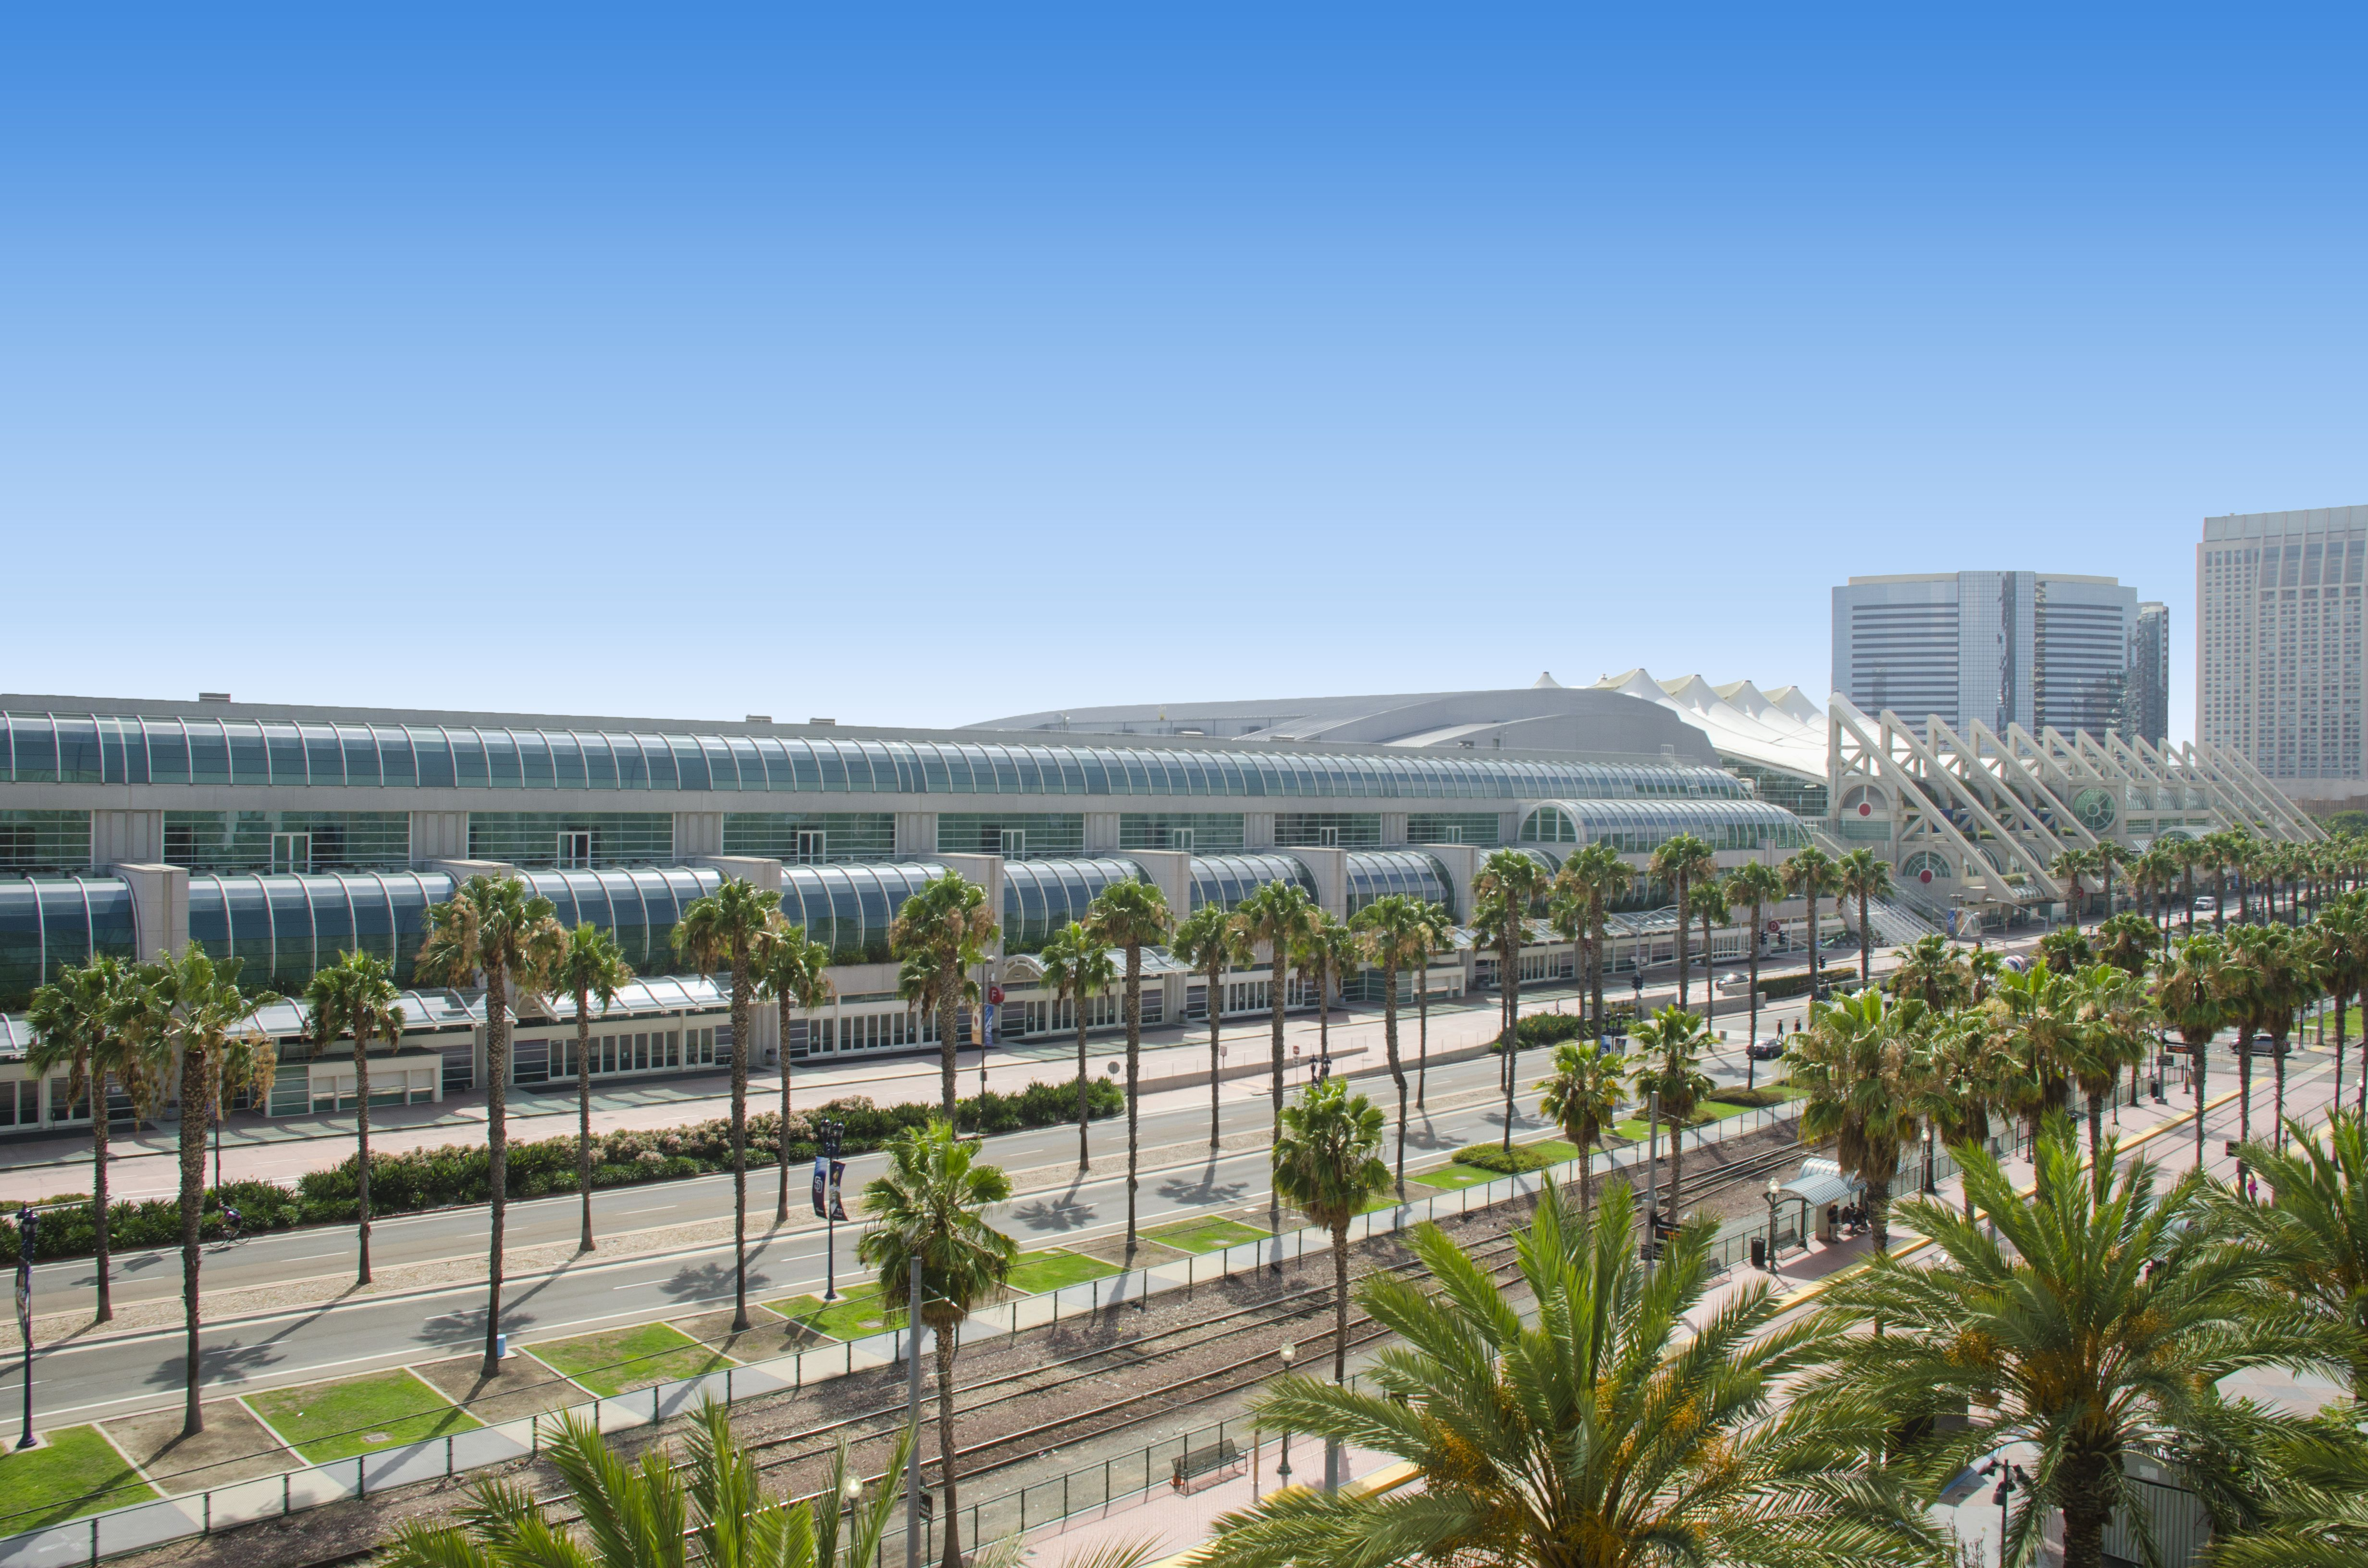 This year's ASPS The Meeting will be held at the San Diego Conference Center, which can hold up to 125,000 people.